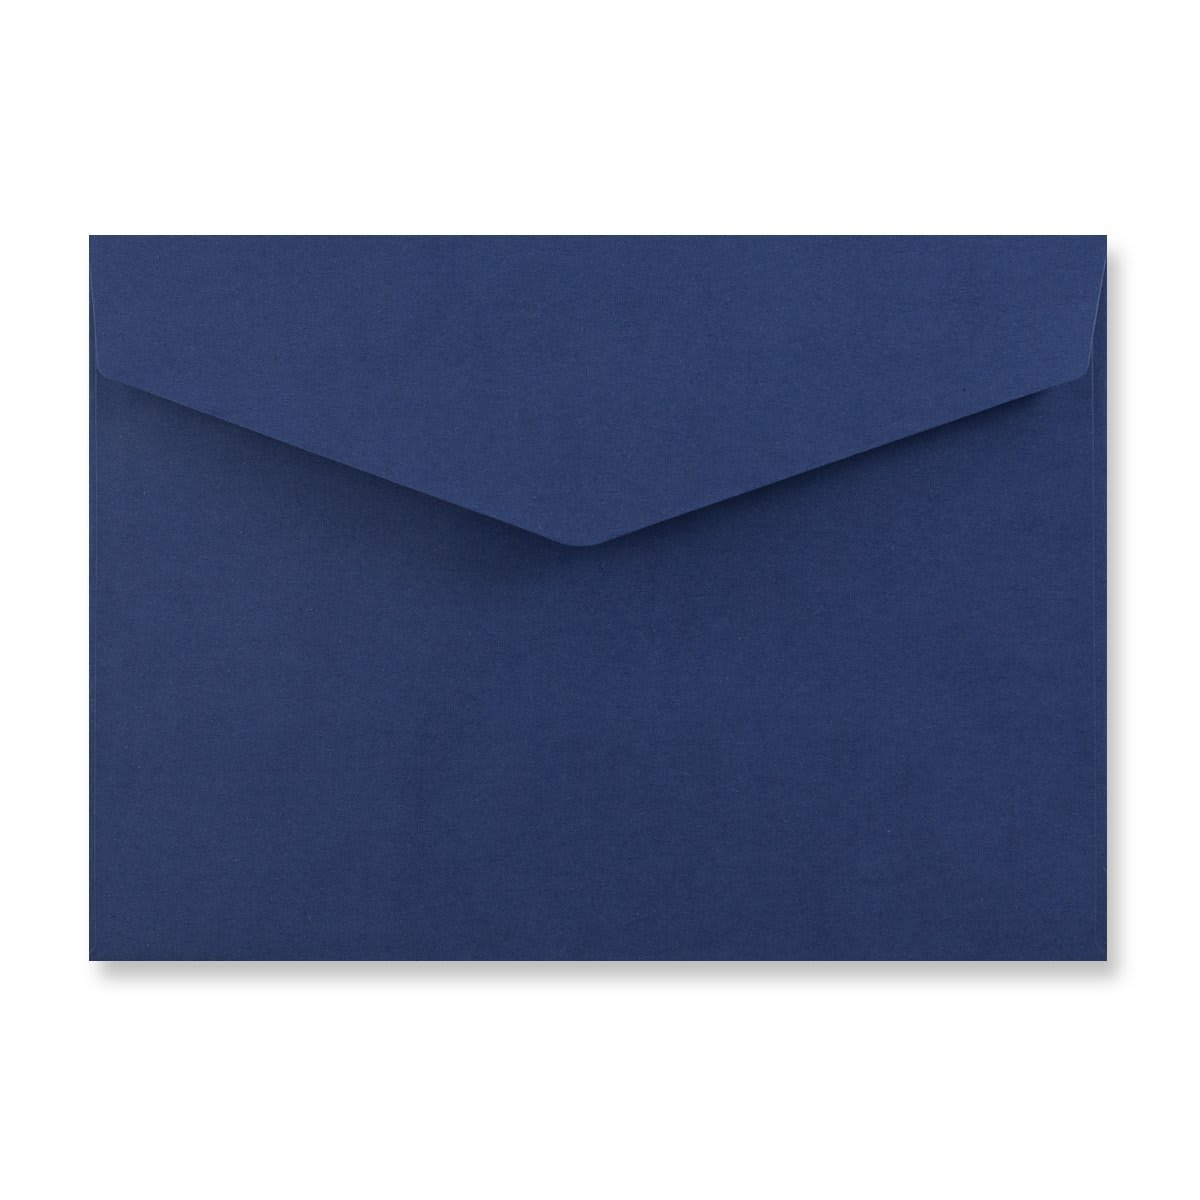 C5 NAVY BLUE V-FLAP PEEL AND SEAL ENVELOPES